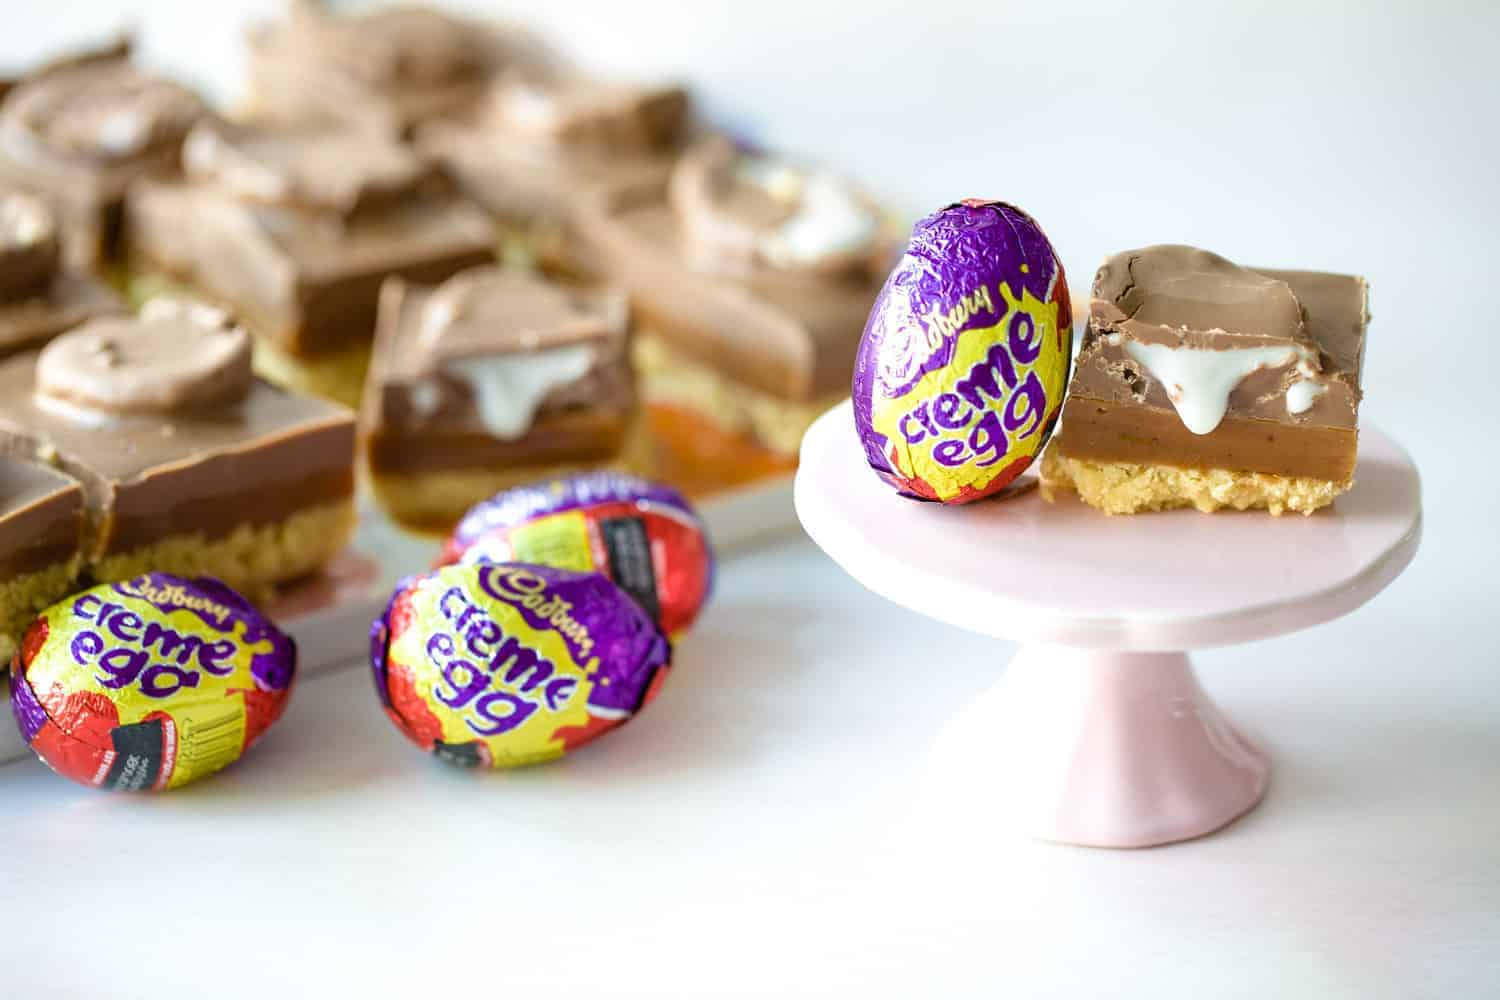 A slice of Creme Egg Shortbread with a Creme Egg beside it